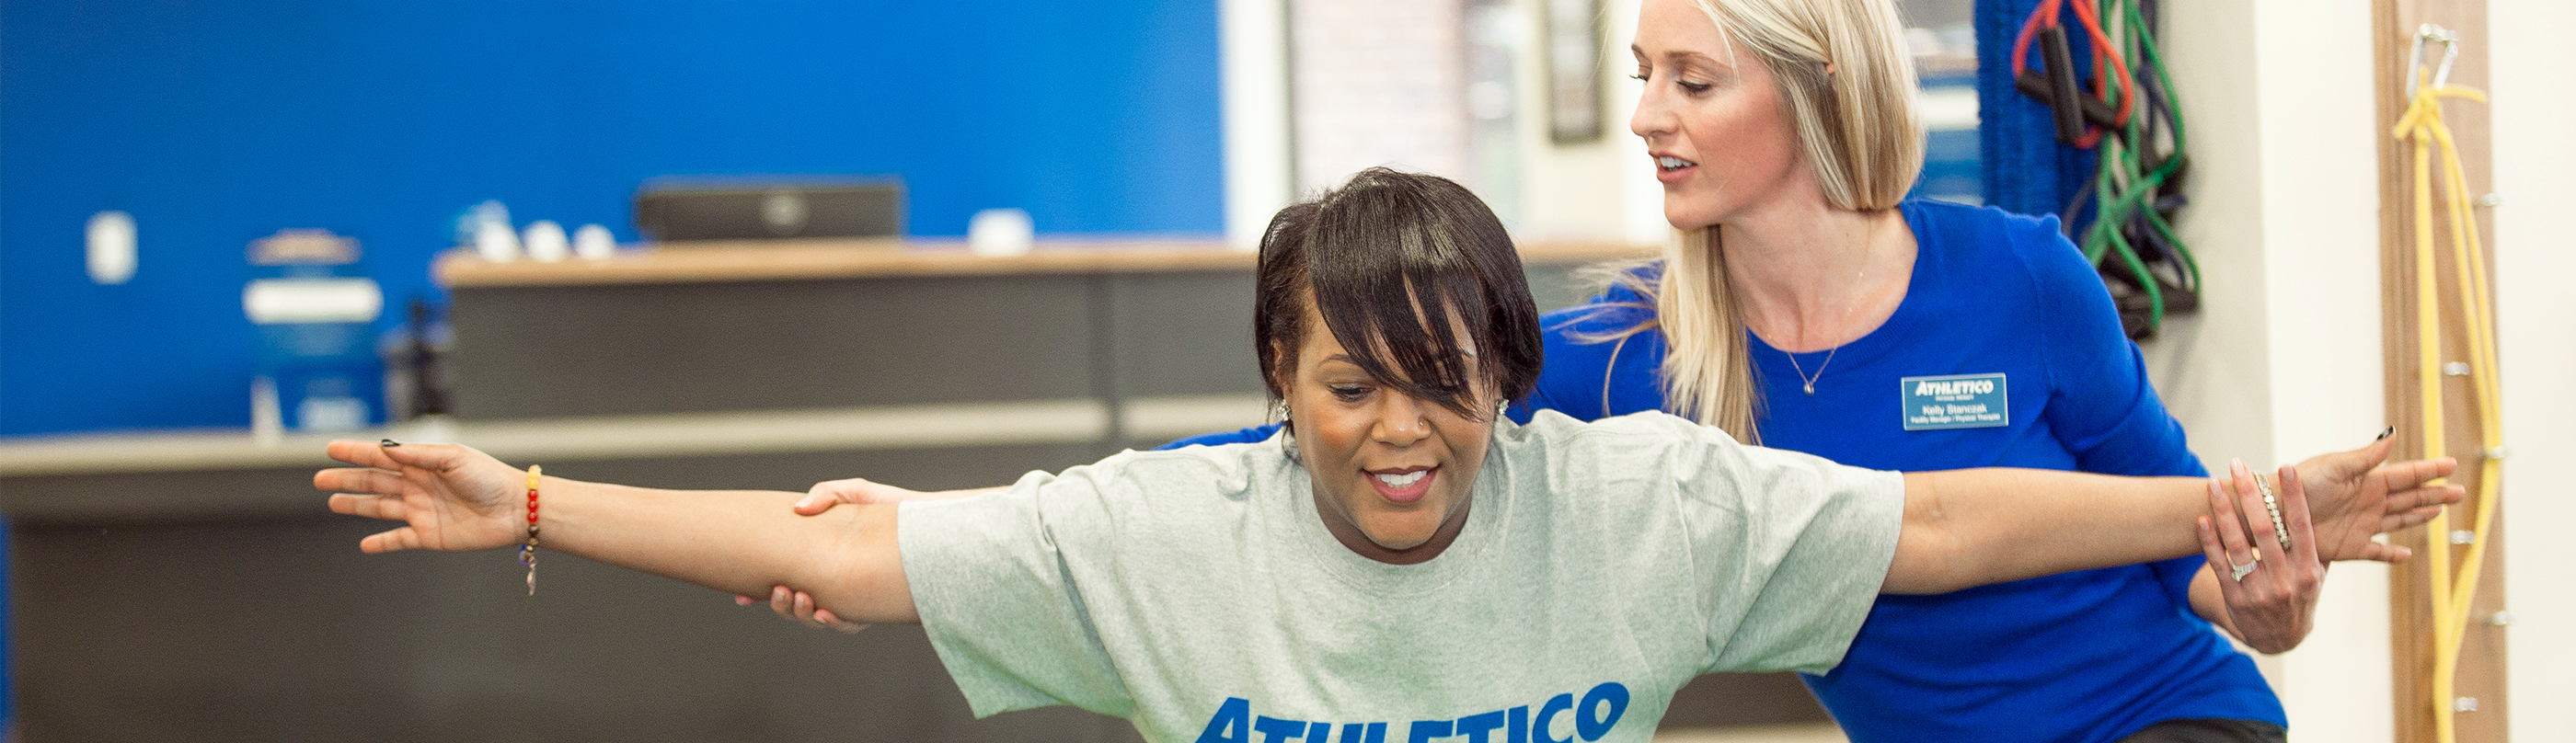 Athletico Physical Therapy Outpatient Physical Therapy And Rehabilitation